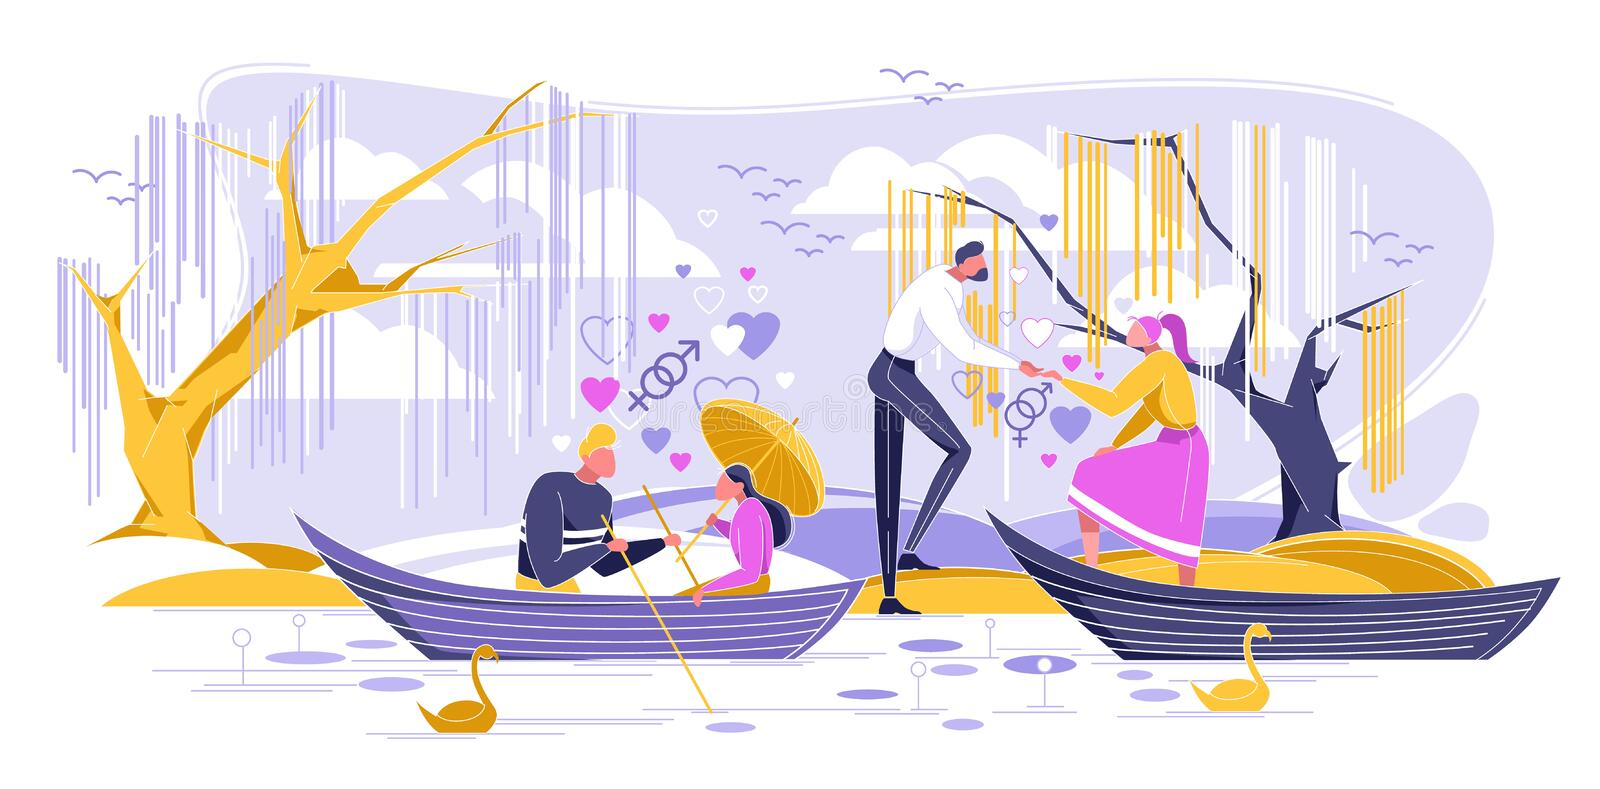 Romantic Dating in Boat, Love Relationship Flat. Romantic Dating in Boat Flat Cartoon Vector Illustration. Quiet Place for Declaration Love. Foliage Trees royalty free illustration